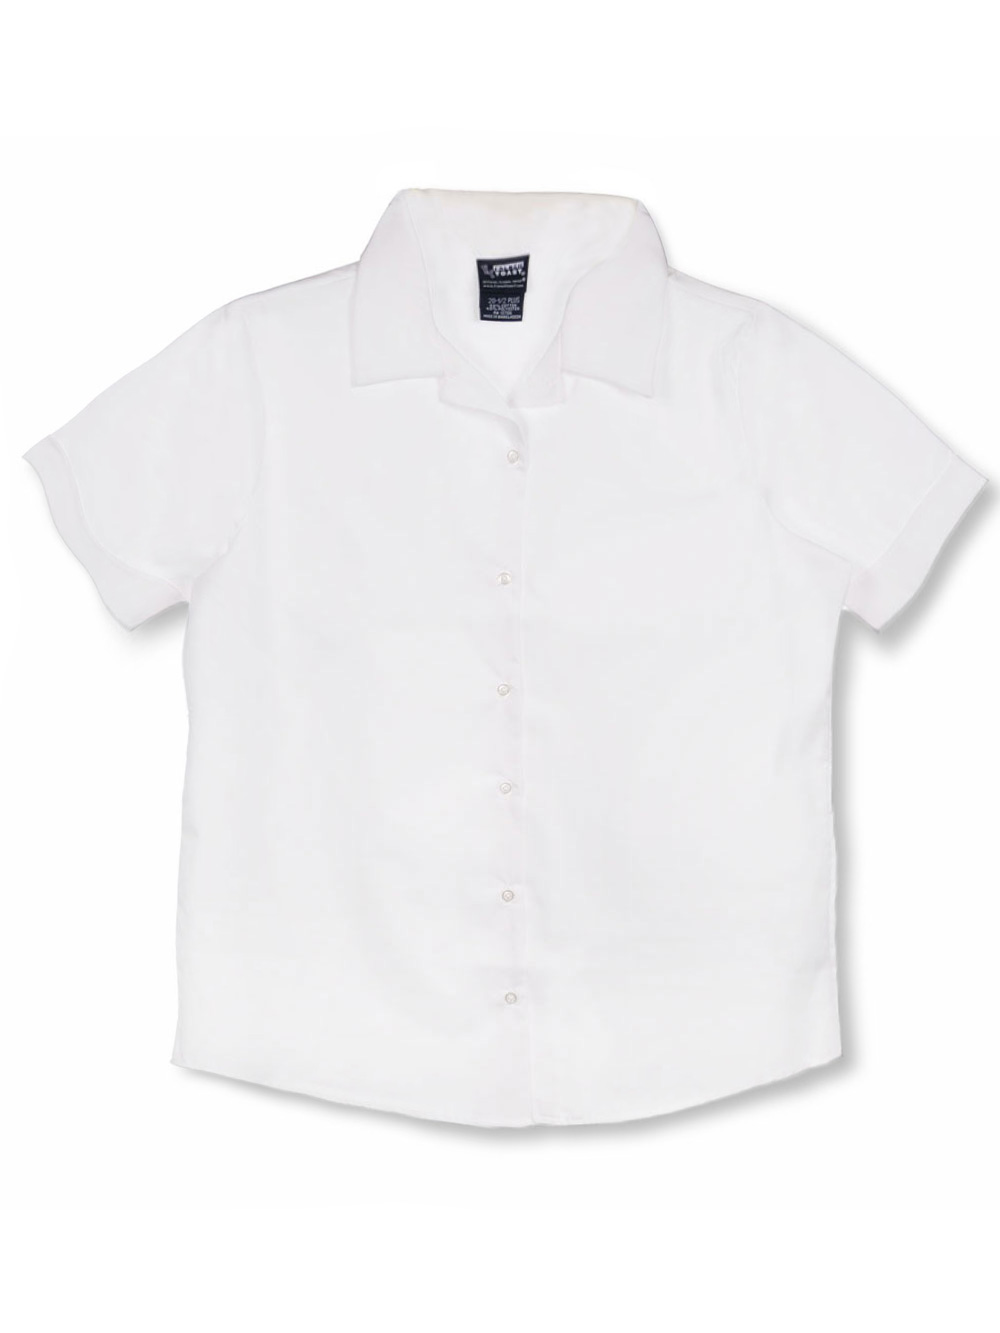 French Toast School Uniform S/S Notched Collar Blouse (Sizes 16C - 20C) - white, 18.5